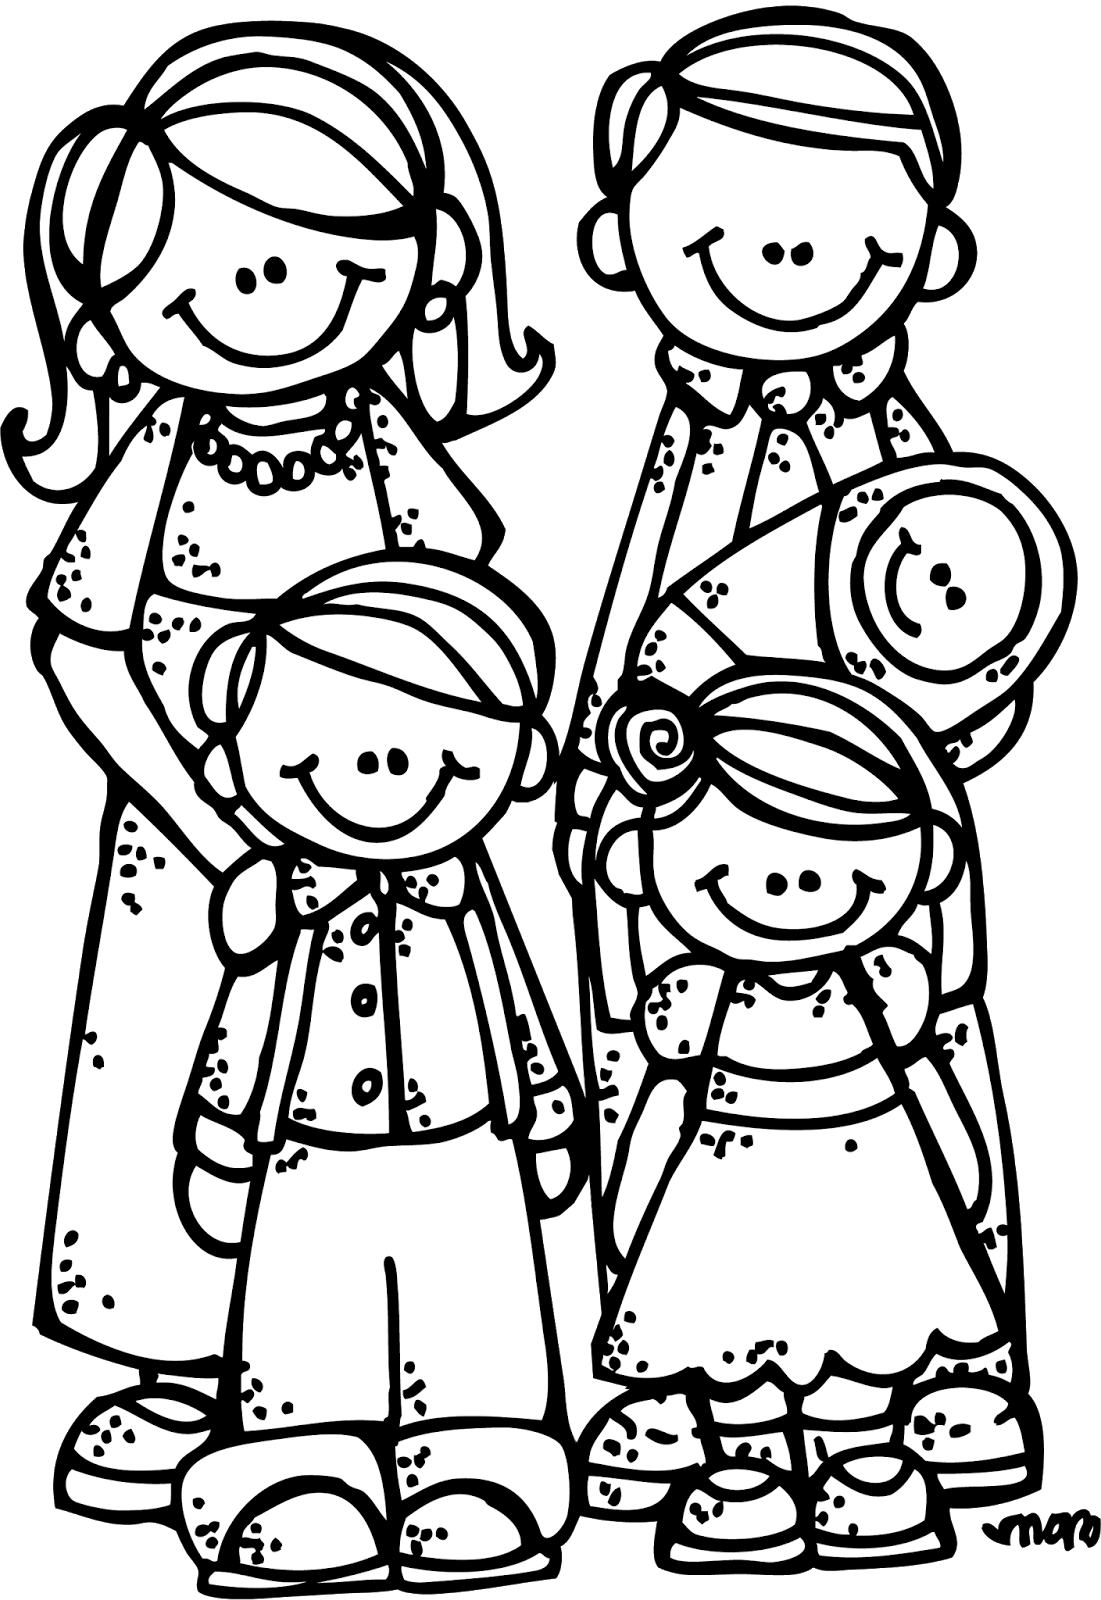 free online family coloring pages - photo#29